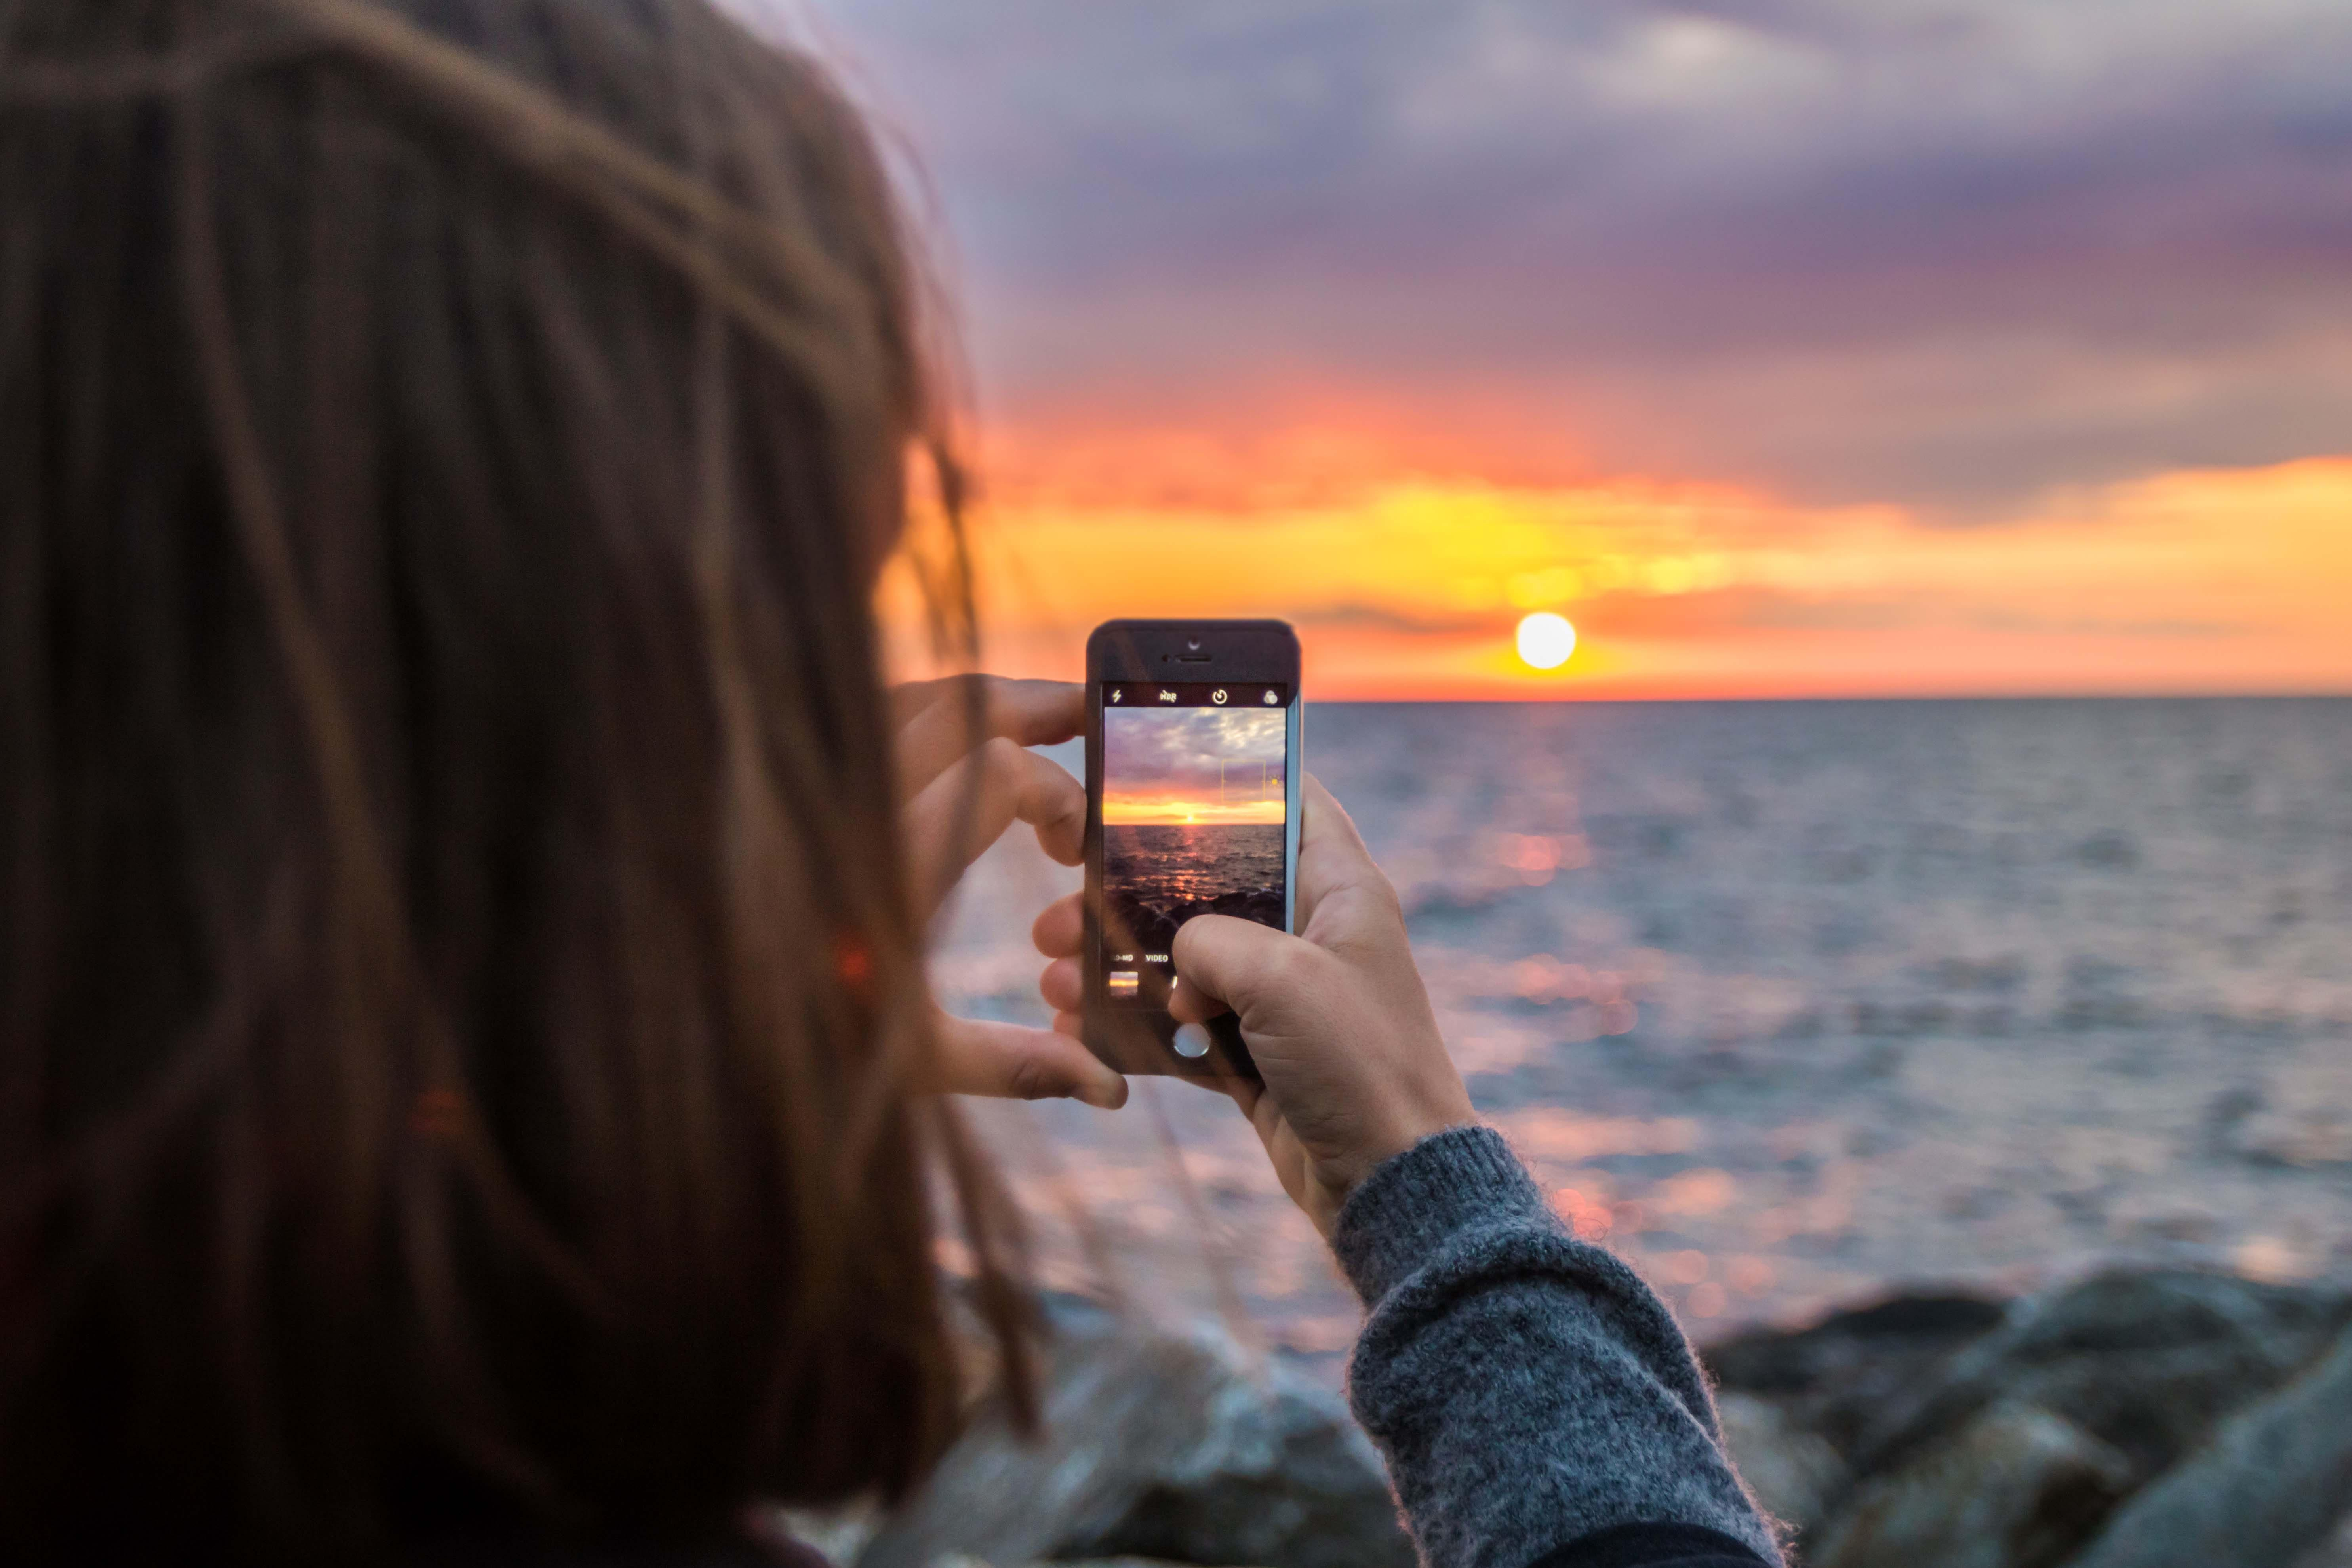 Woman using camera phone to take picture of sunset